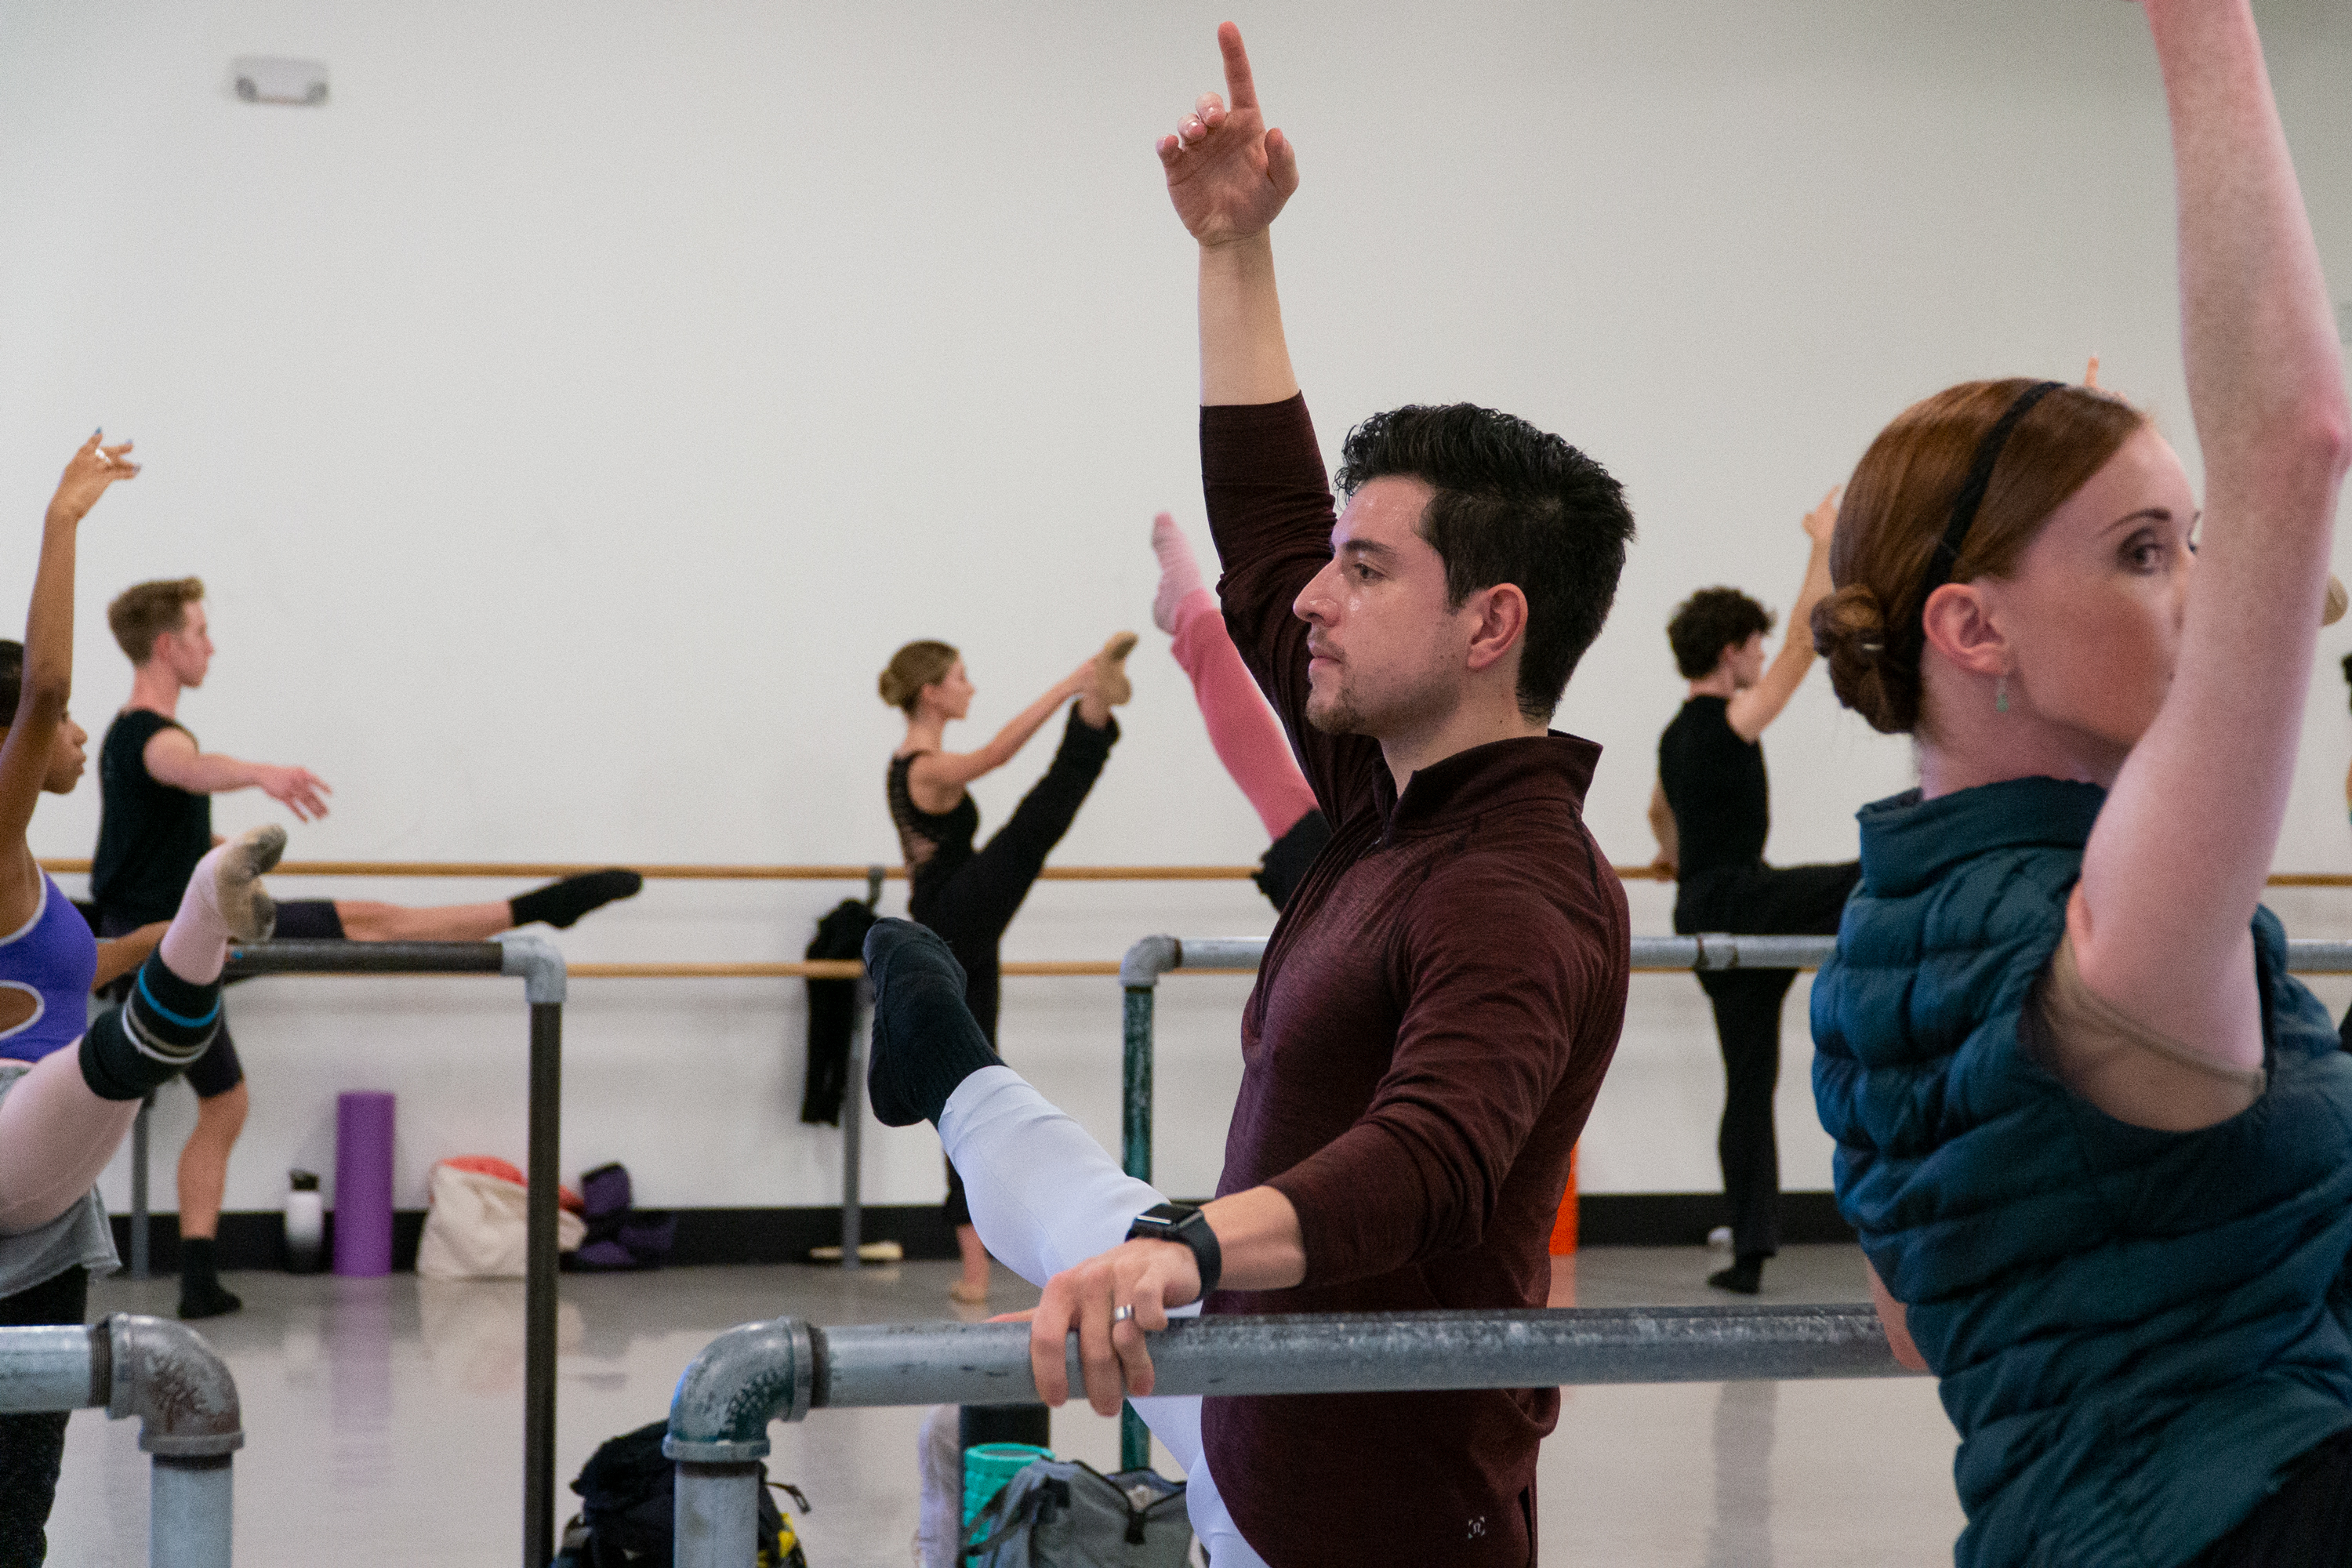 Colorado Ballet principal dancer Francisco Estevez warms up his muscles at the ballet barre during the company's morning technique class on Sept. 24, 2019.